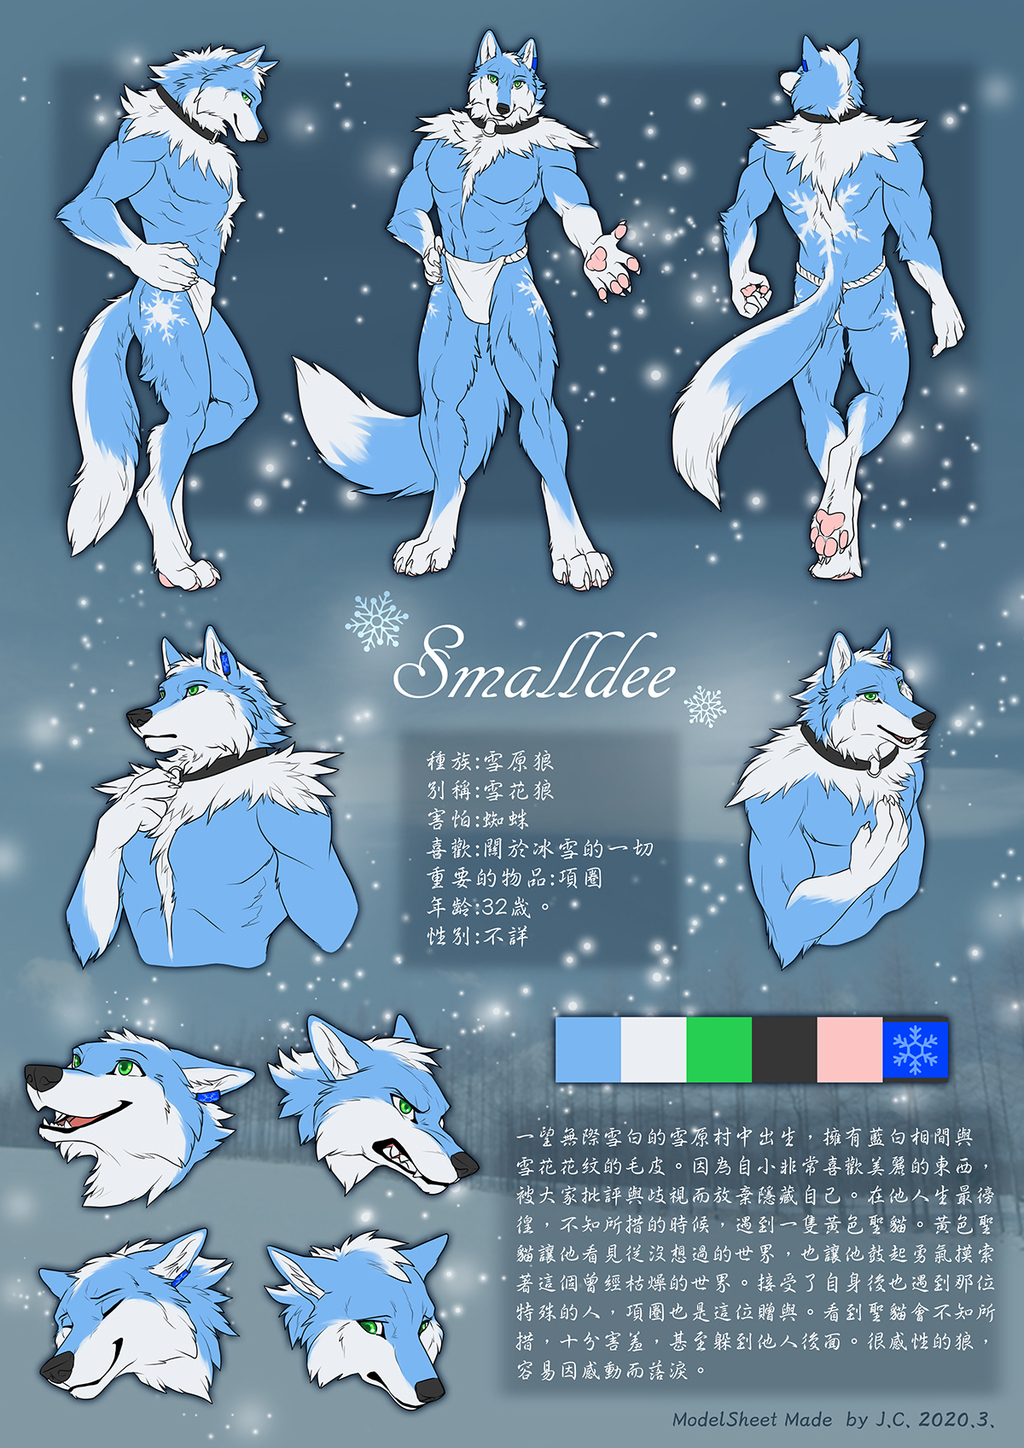 Most recent image: Smalldee model sheet